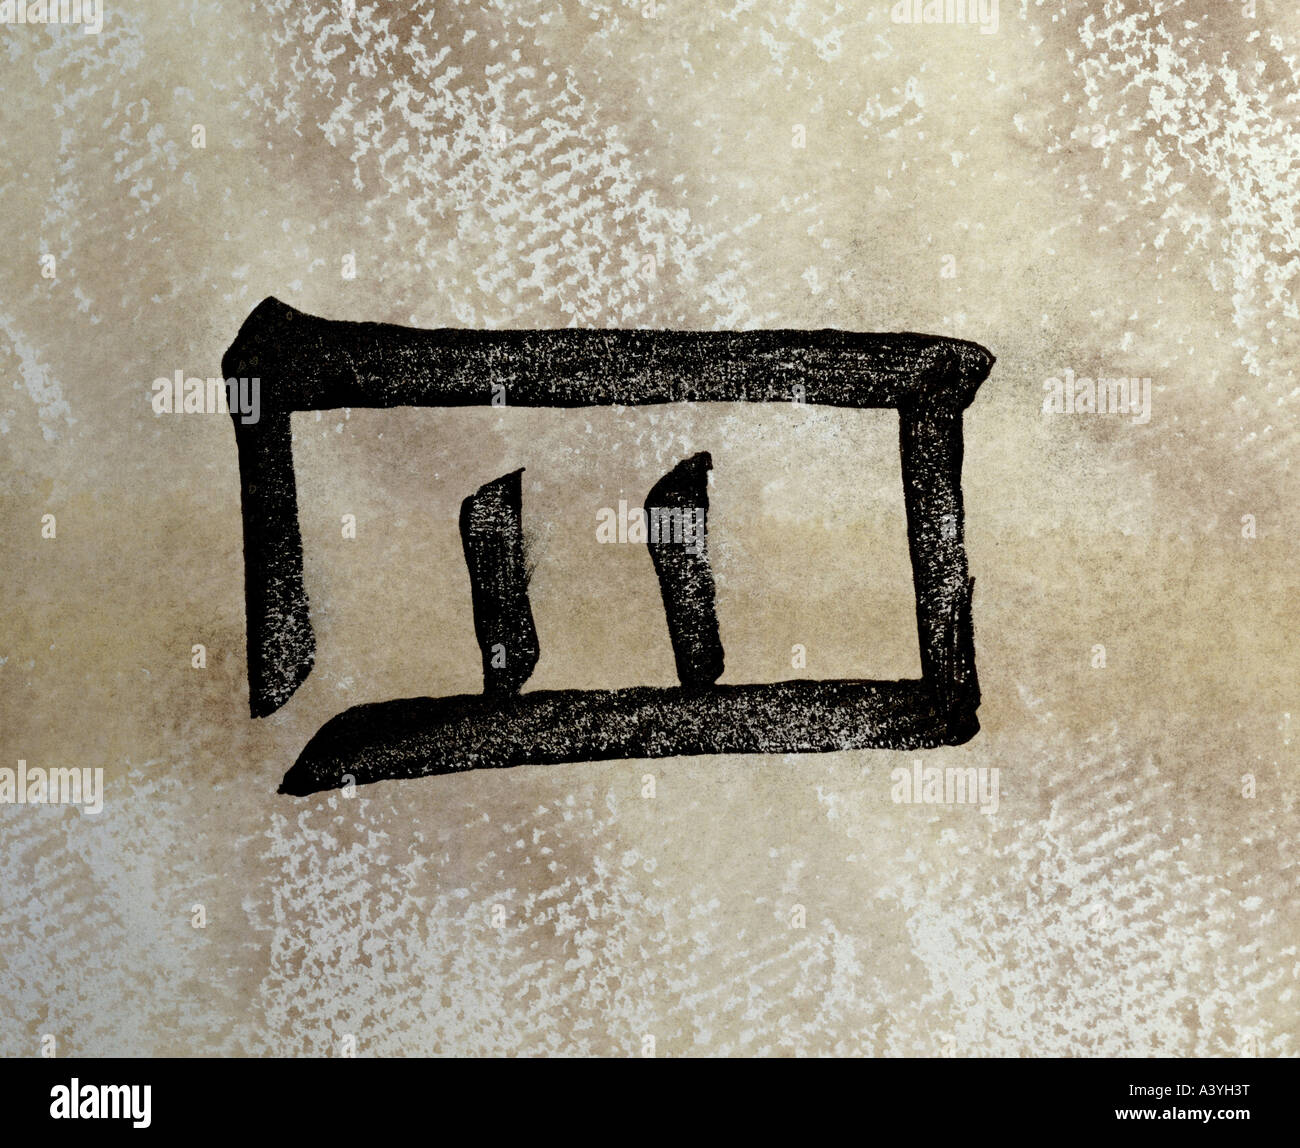 writing, scripture, China, character, pictogram for eye (mu), ink on paper, private collection, historic, historical, - Stock Image